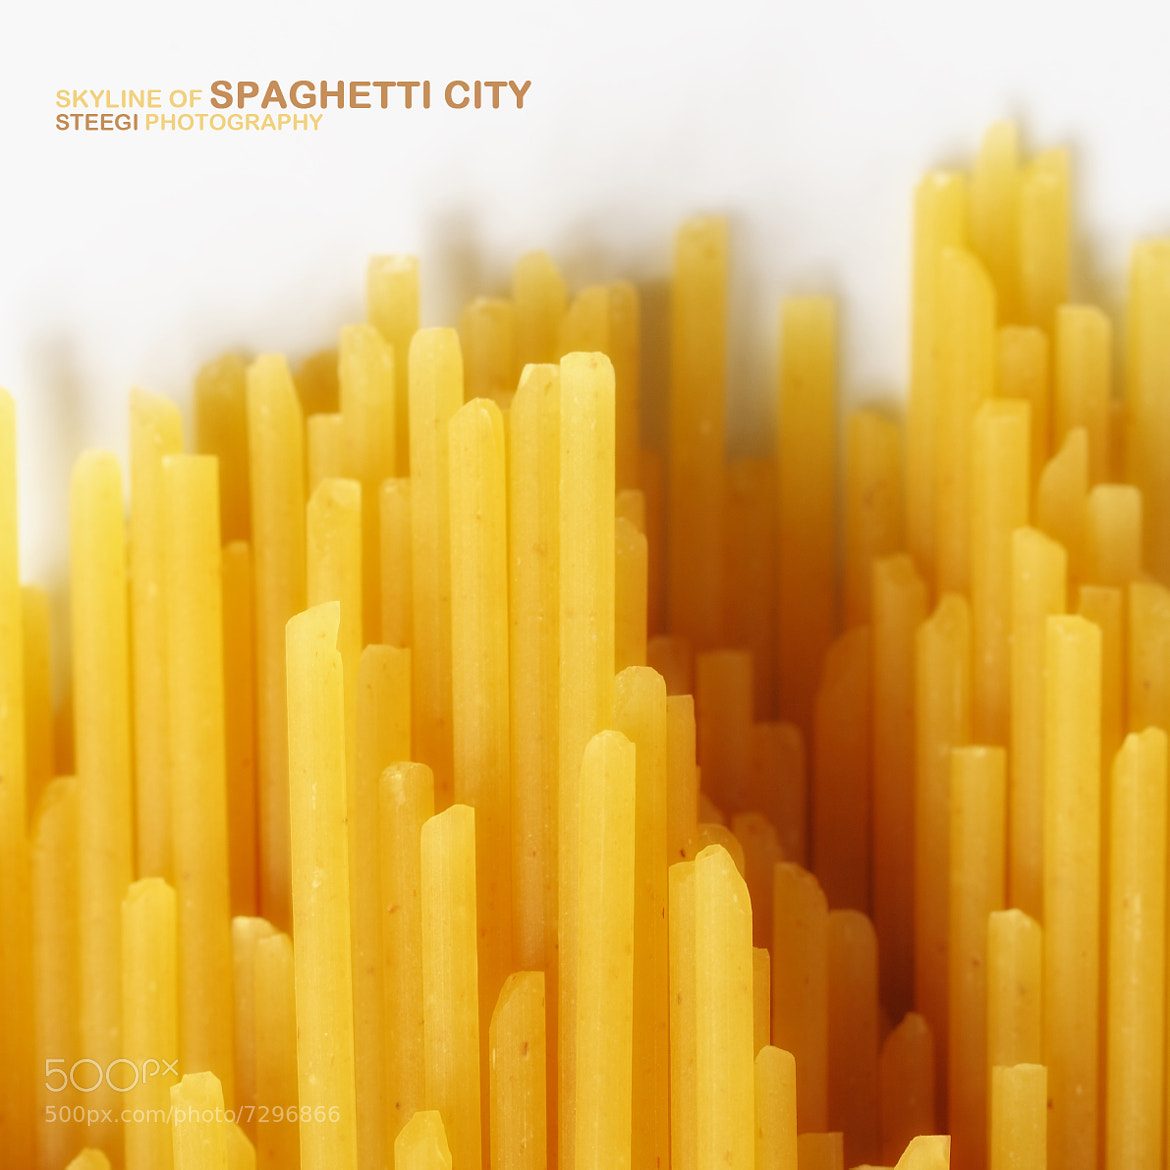 Photograph Skyline of Spaghetti City by Andreas Steegmann on 500px